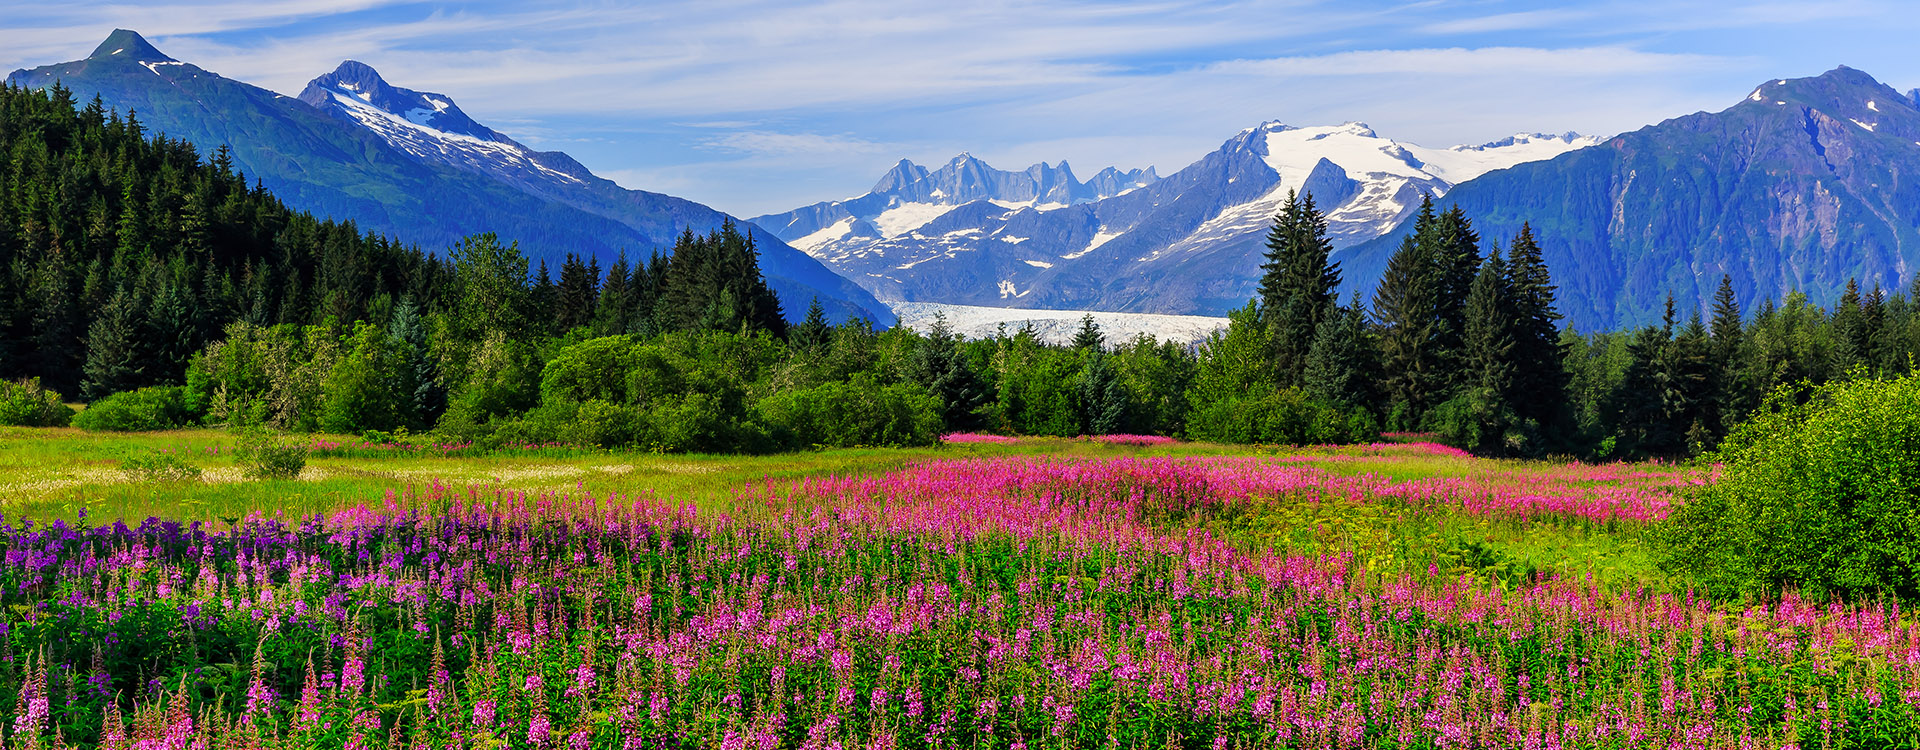 Juneau, Alaska. Mendenhall Glacier Viewpoint with Fireweed in bloom